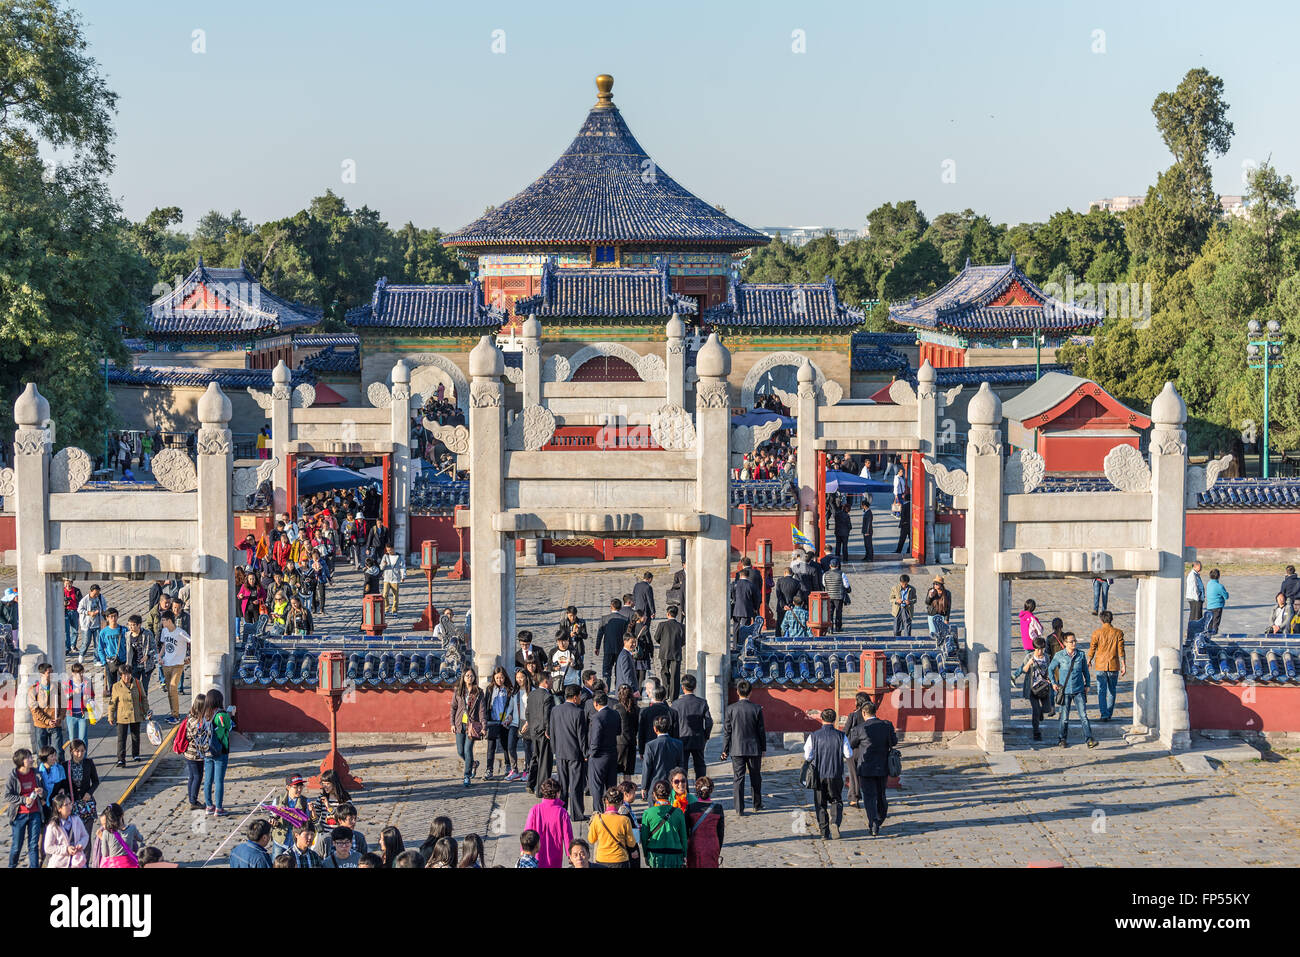 A lot of tourists visit a Temple of Heaven or 'Tiantan' pagoda in Beijing,China. - Stock Image